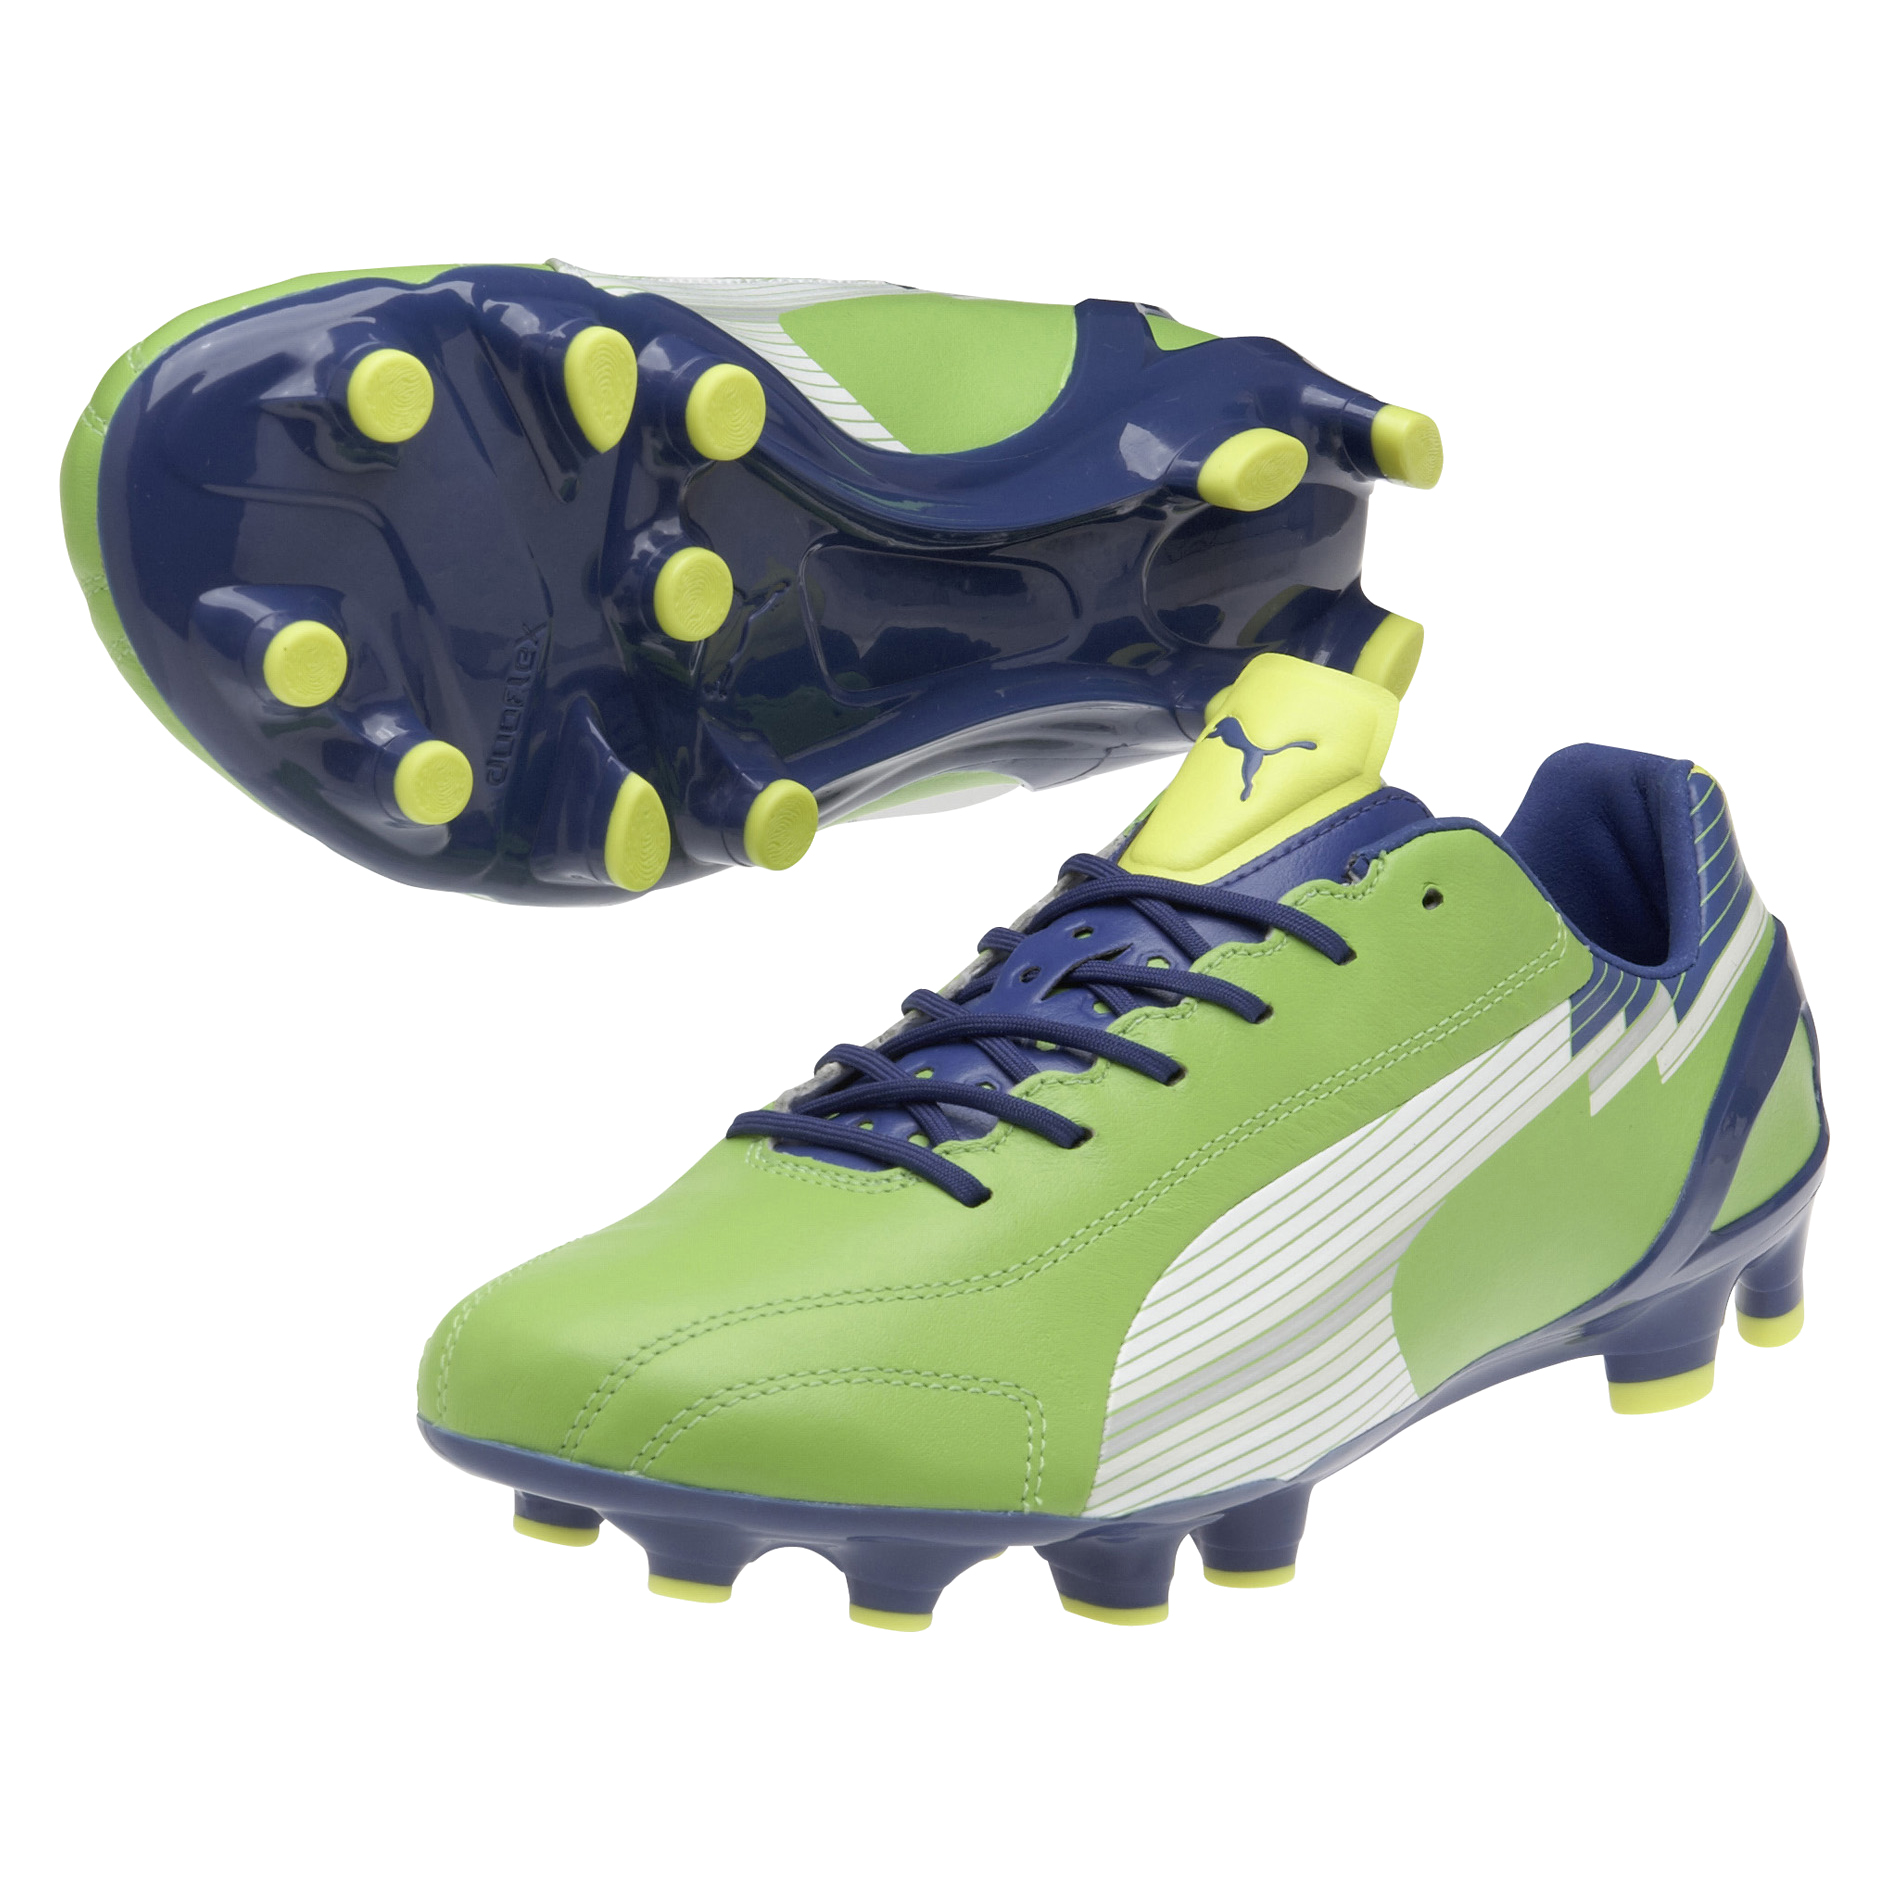 Puma evoSPEED 1 K Firm Ground Football Boots - Jasmin Green/Monaco Blue/Fluo Yellow